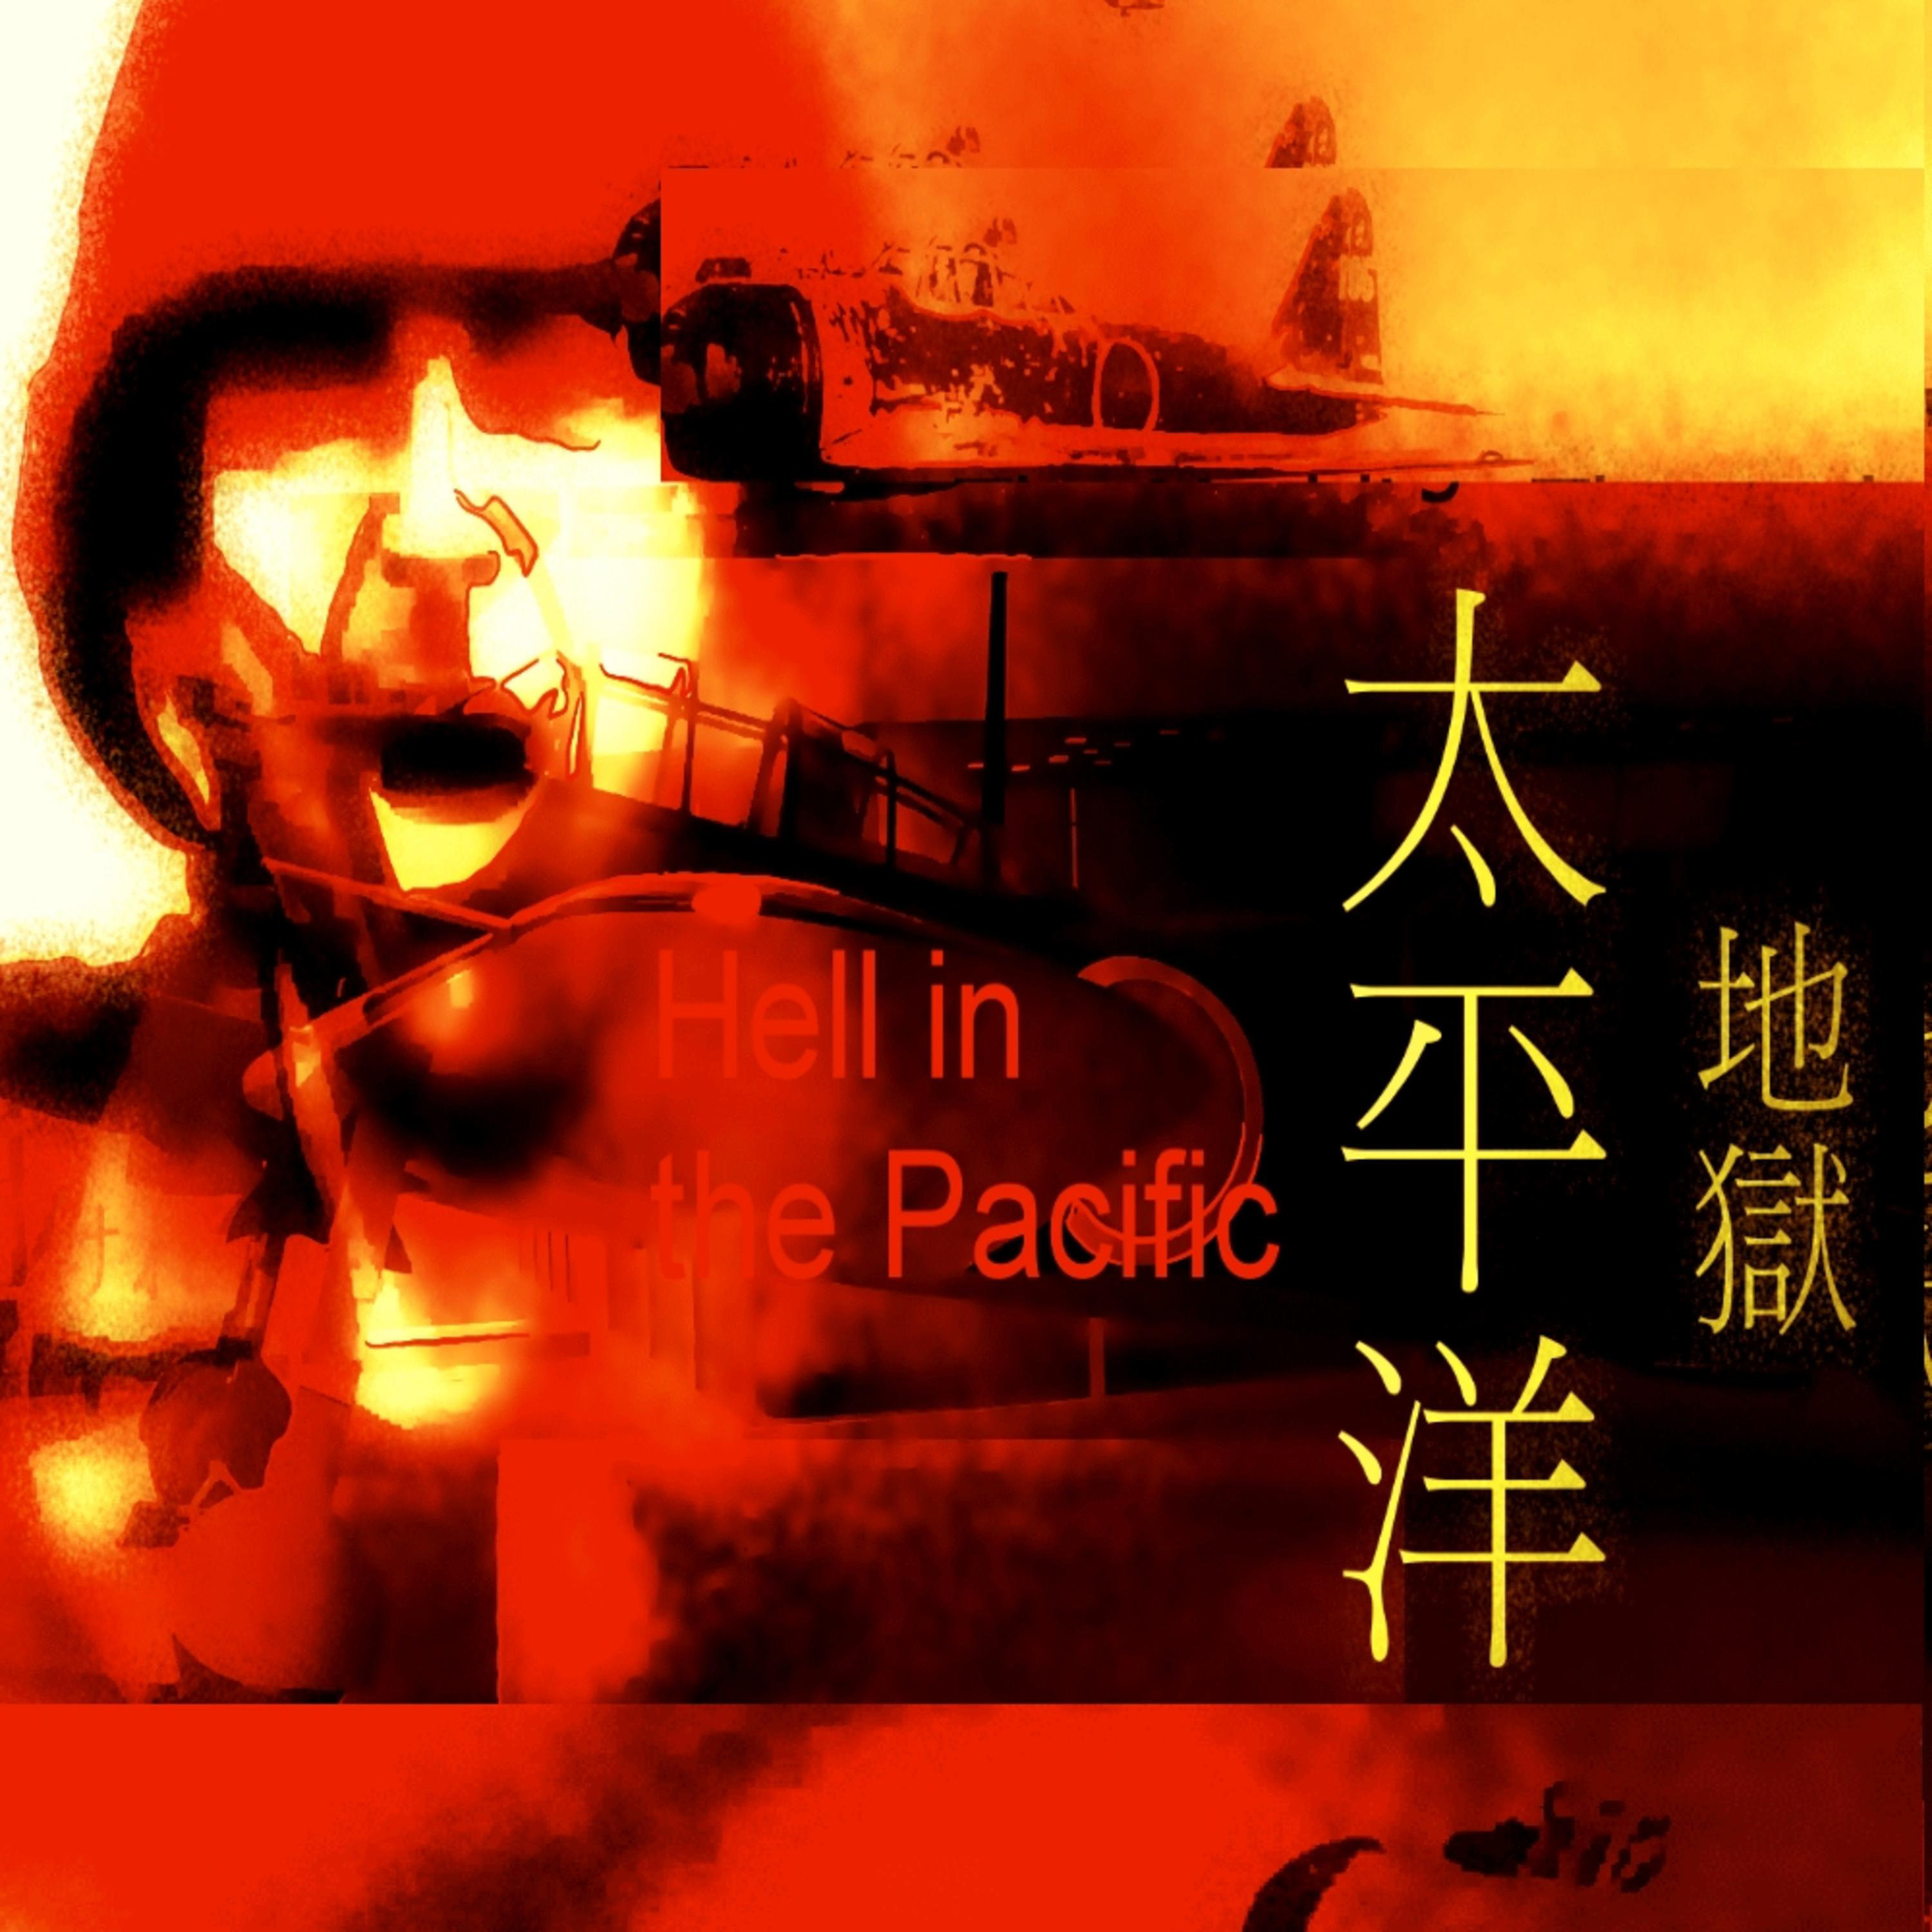 hell in the pacific Hell in the pacific (1968) - war, drama an american pilot and a marooned japanese navy captain are together on a small deserted island during wwii.